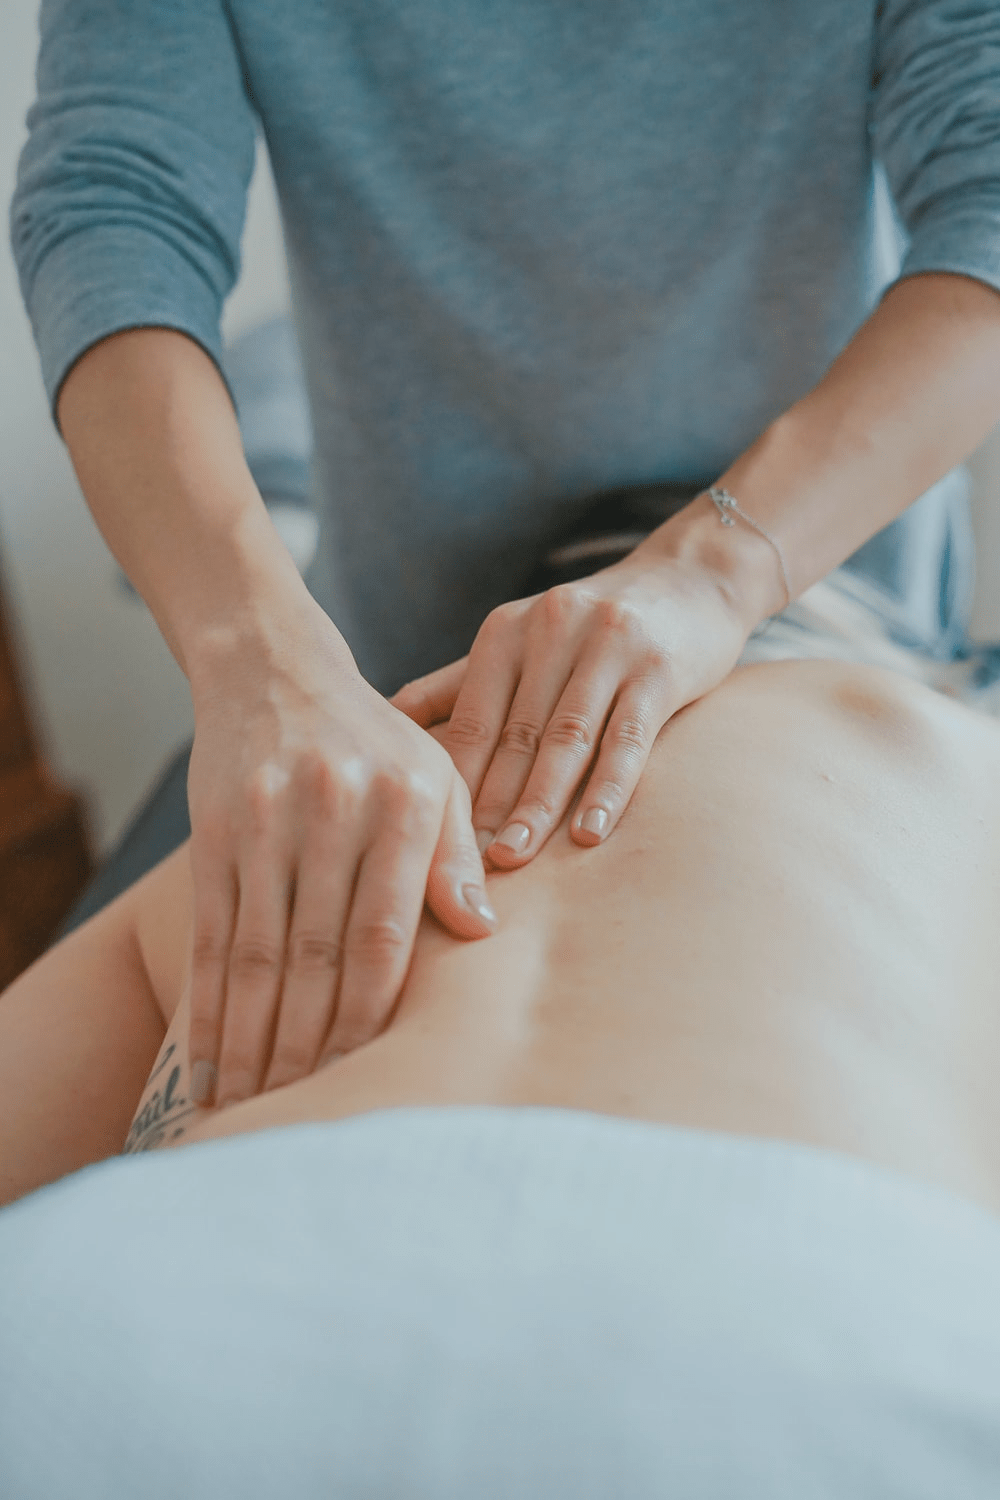 Masseuse working on a person's back